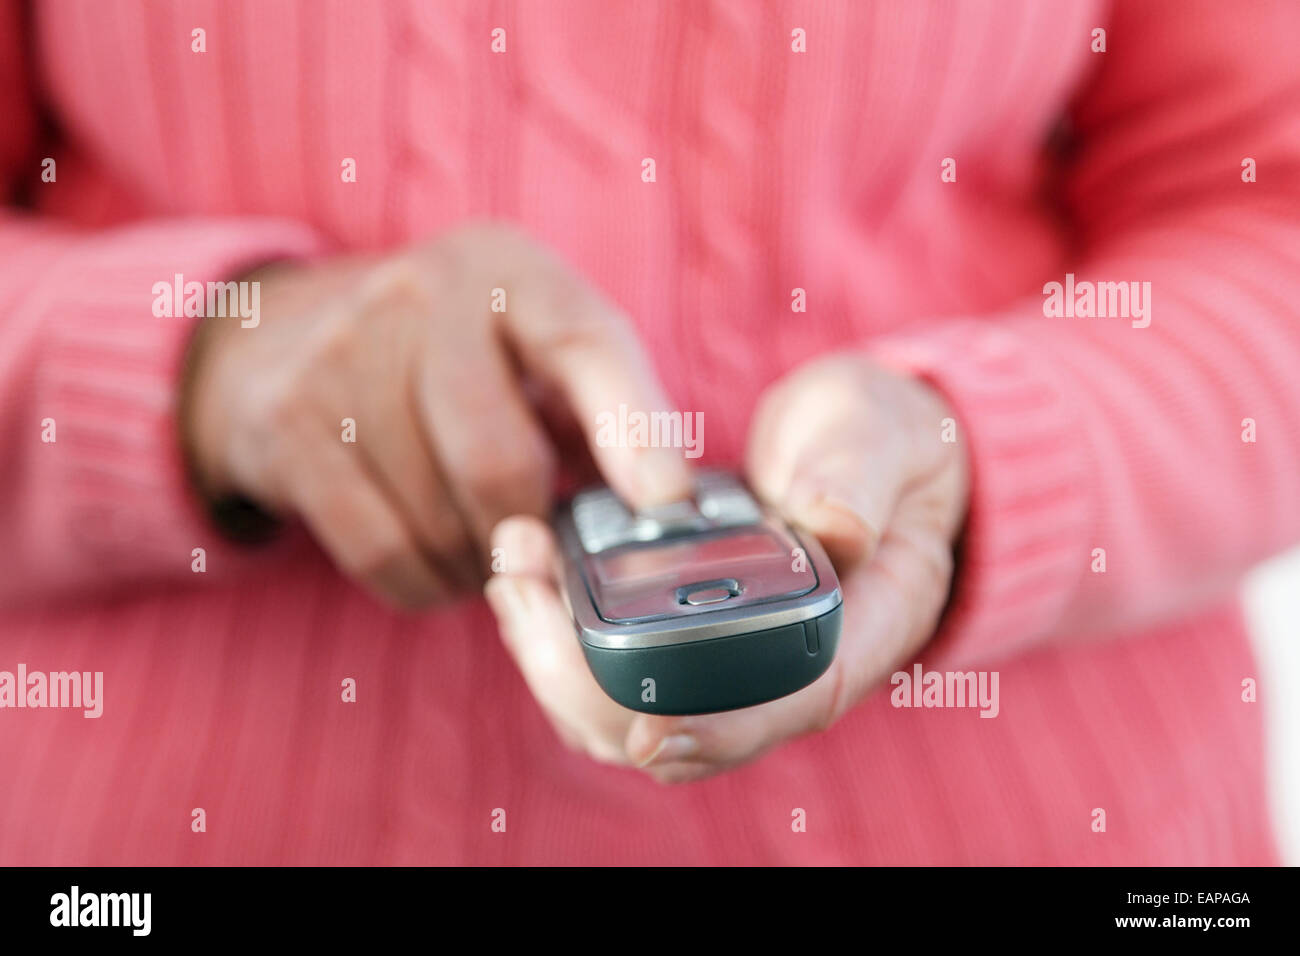 A right-handed senior woman using a touch phone handset keypad to dial a telephone number to make a phone call from - Stock Image